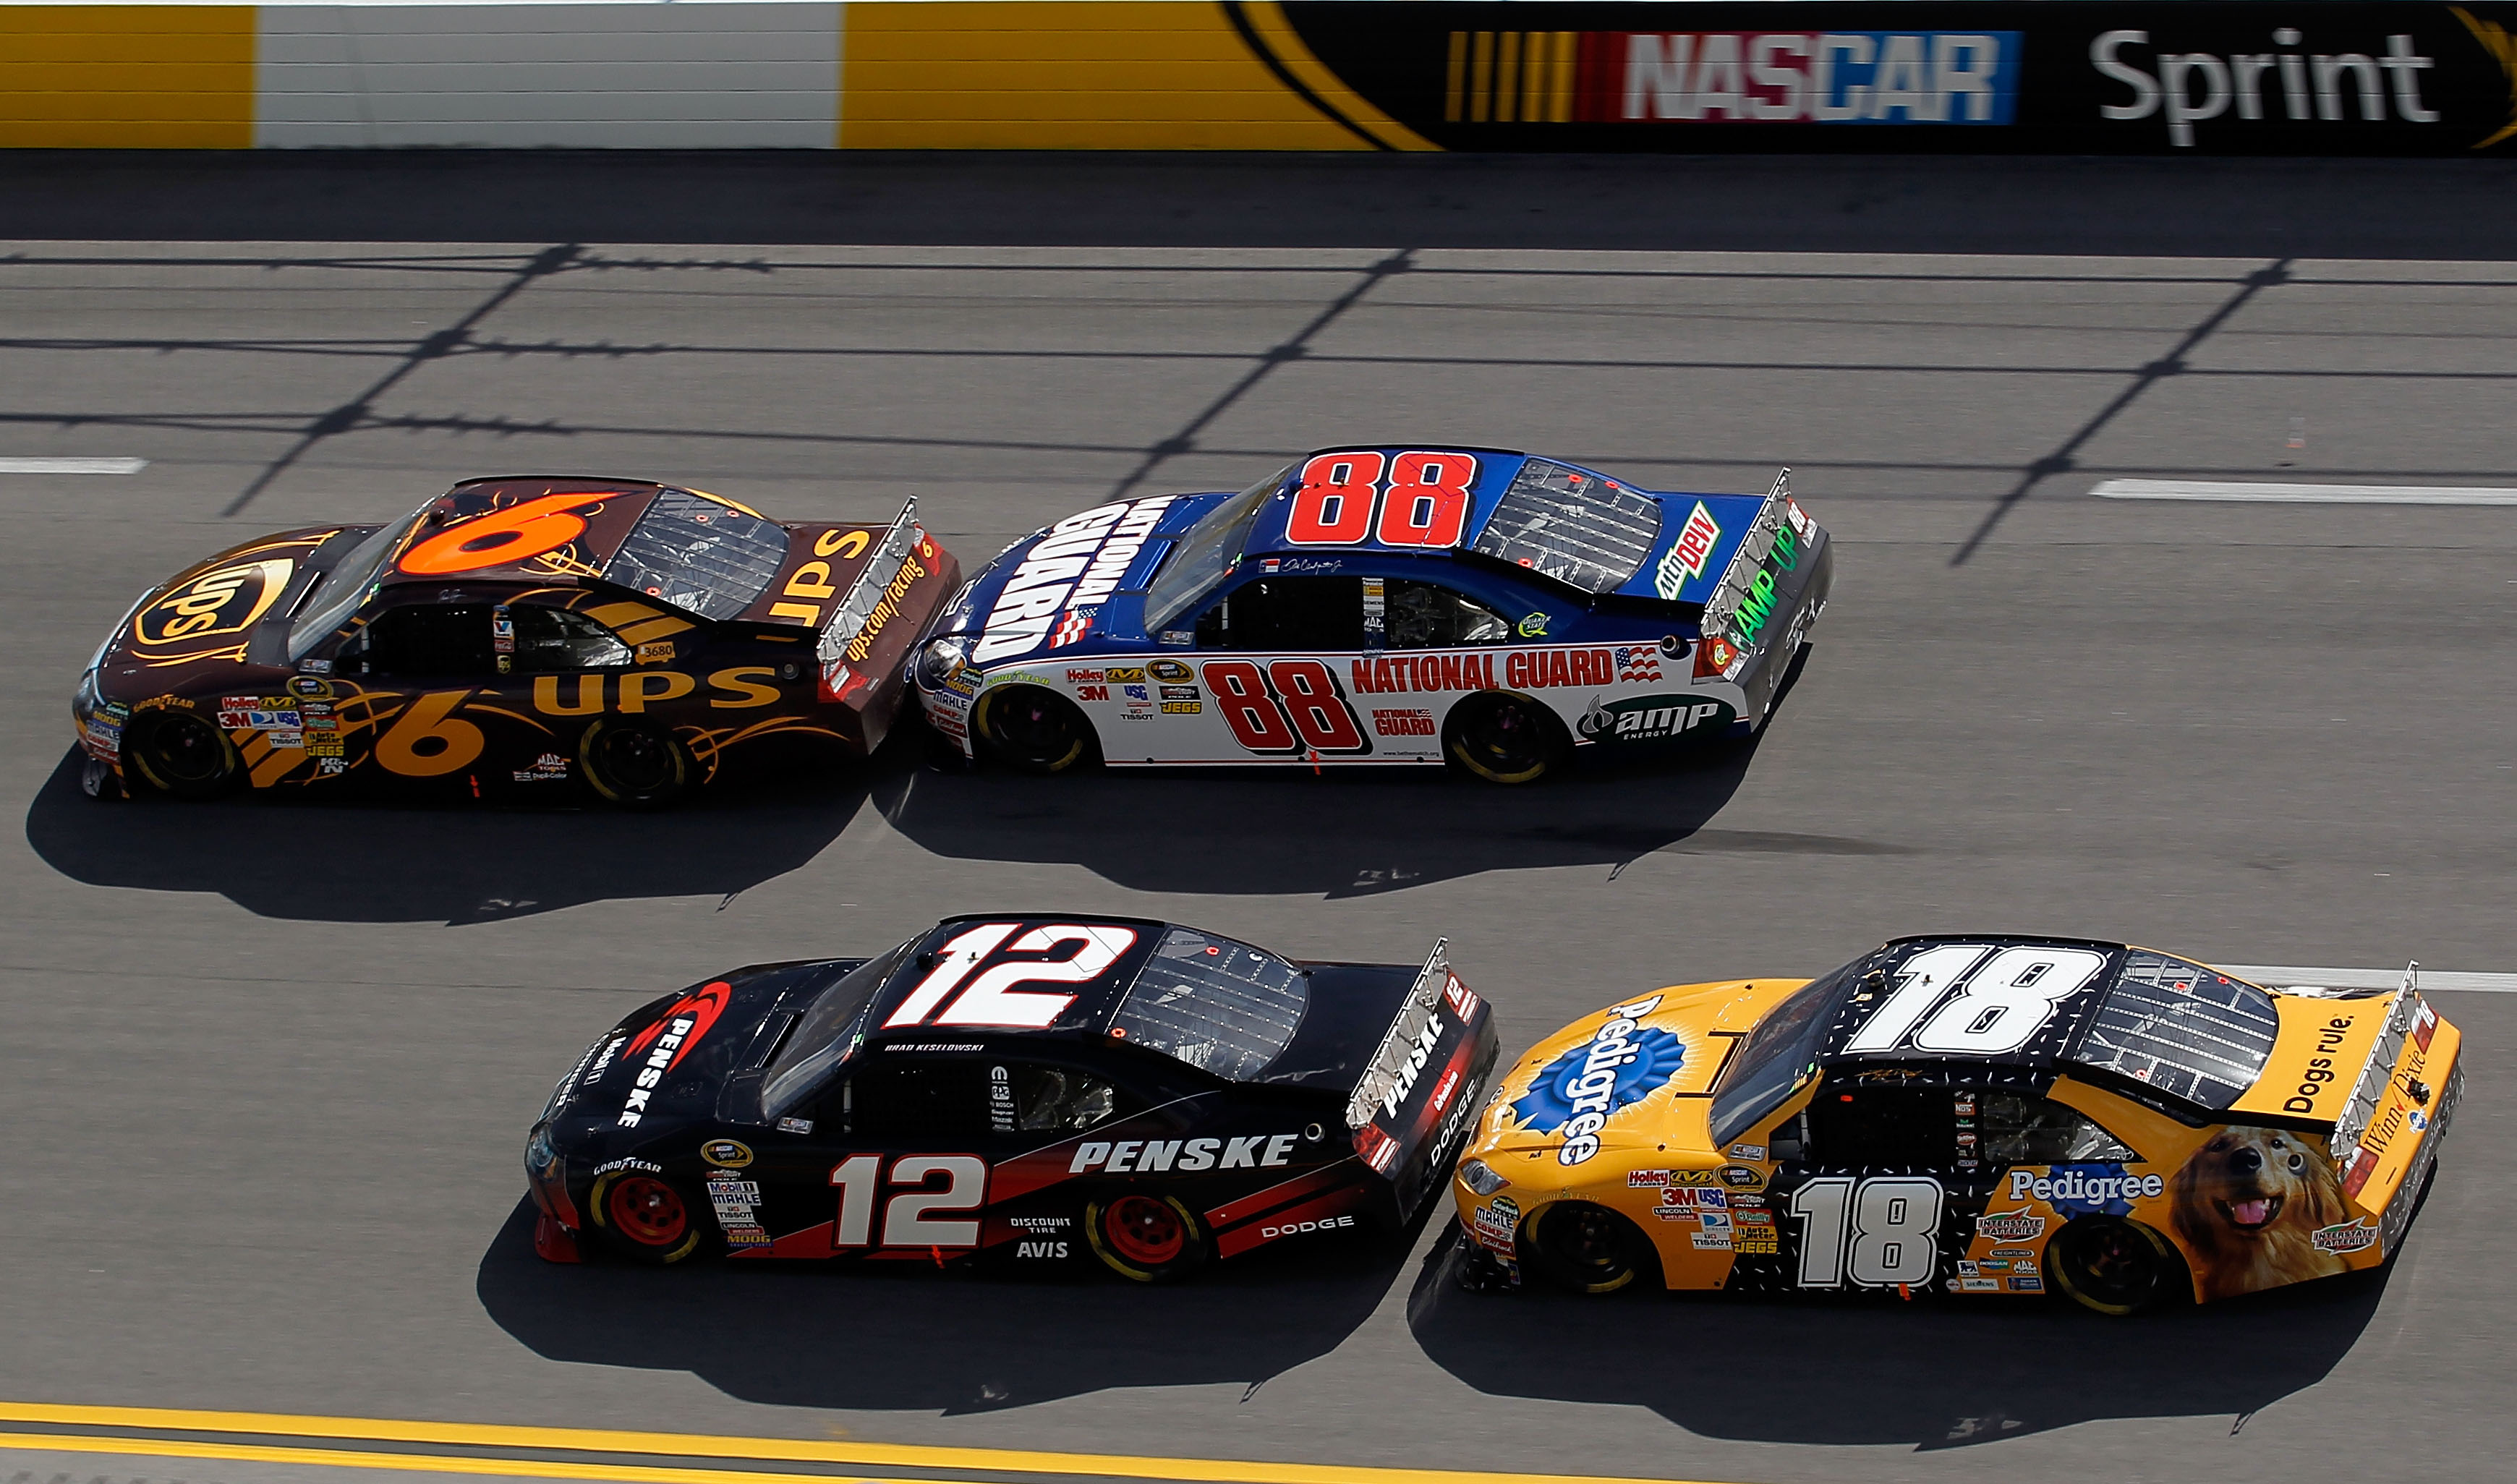 TALLADEGA, AL - APRIL 25:  Brad Keselowski, driver of the #12 Penske Dodge, and David Ragan, driver of the #6 UPS Ford, get bump drafted by Kyle Busch, driver of the #18 Pedigree Toyota, and Dale Earnhardt Jr., driver of the #88 National Guard/AMP Energy